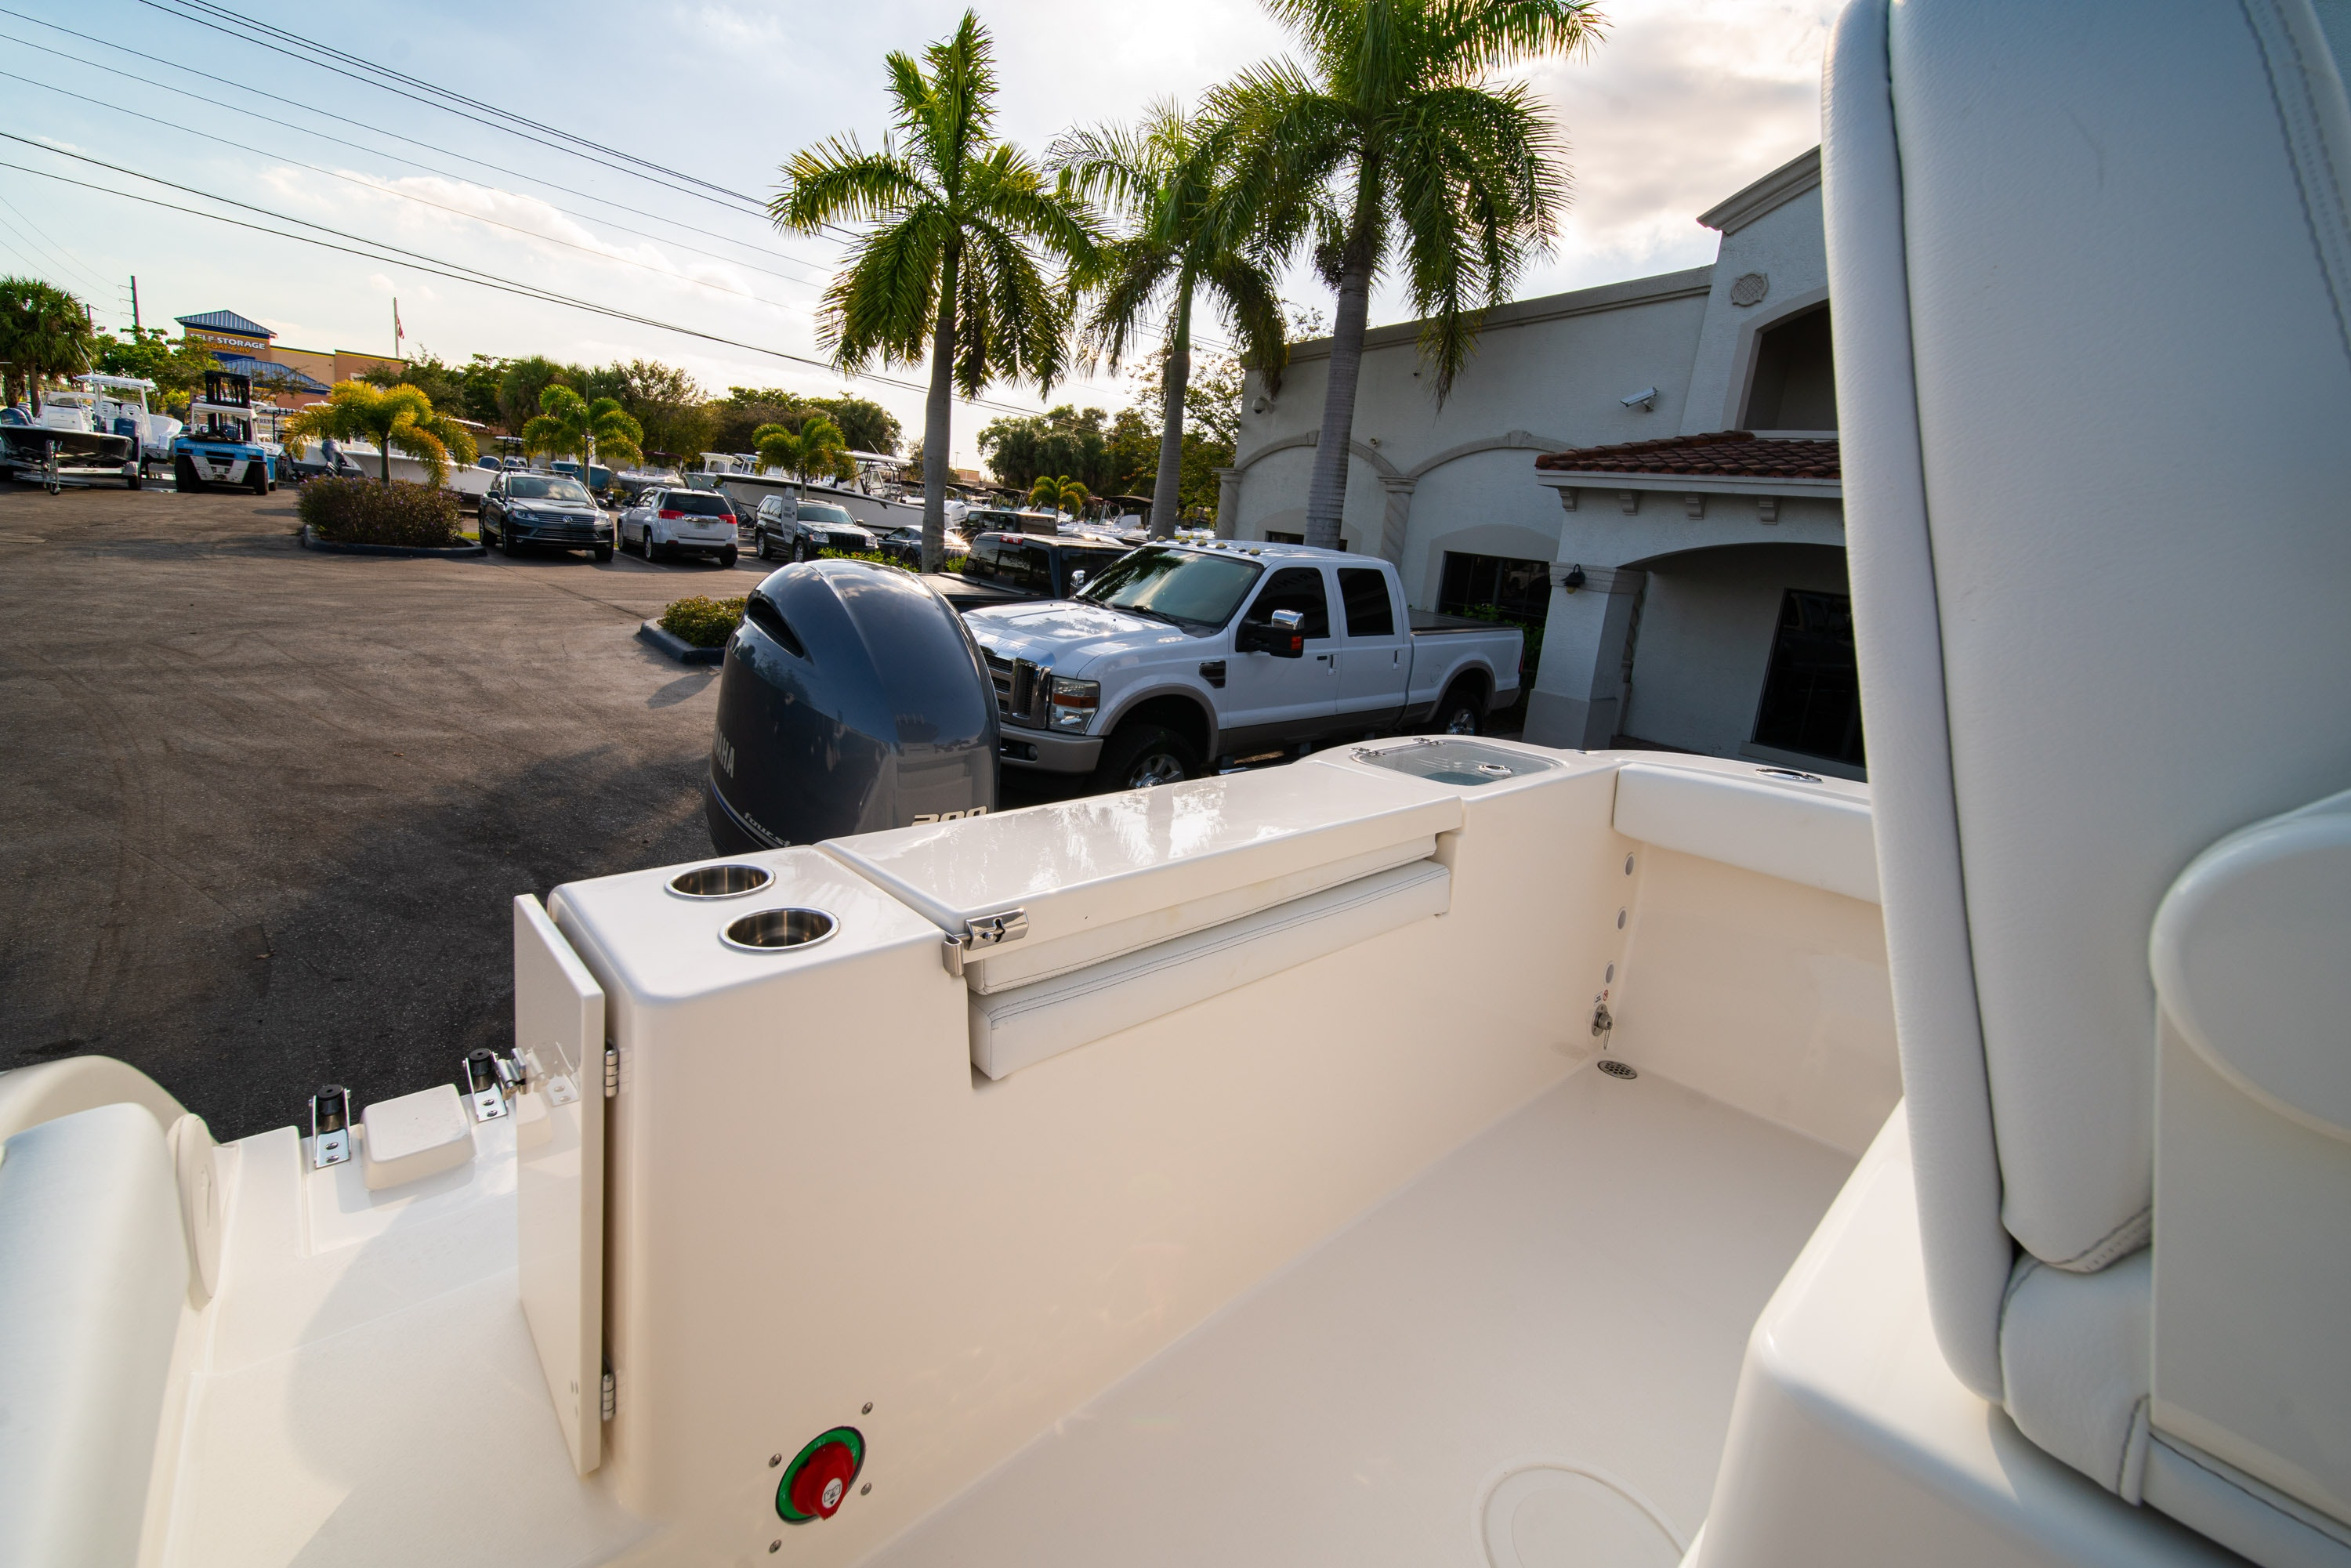 Thumbnail 9 for New 2020 Cobia 220 CC boat for sale in West Palm Beach, FL